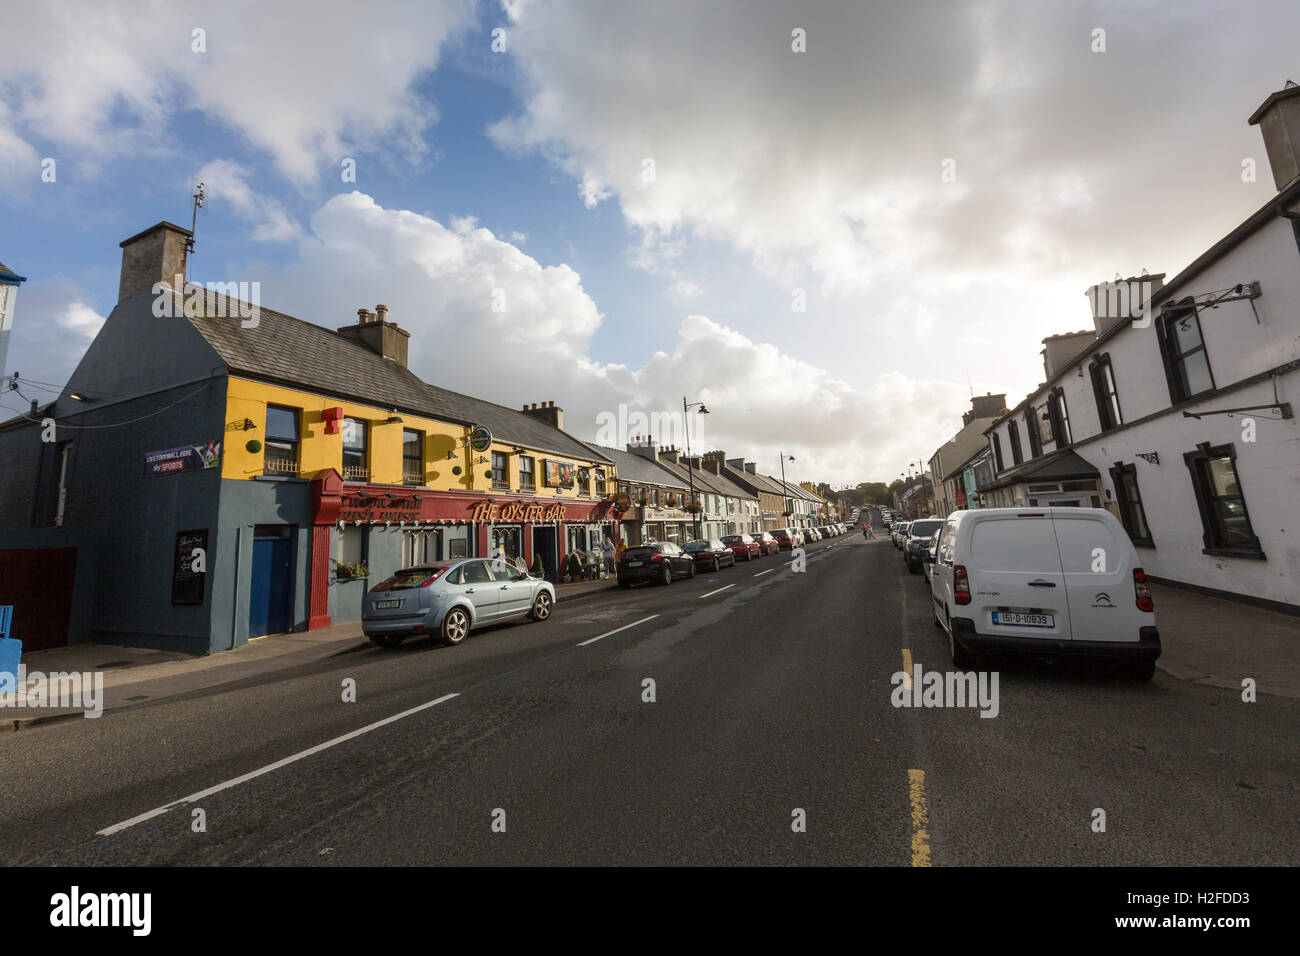 Main Street, Dunfanaghy, County Donegal, Ireland - Stock Image